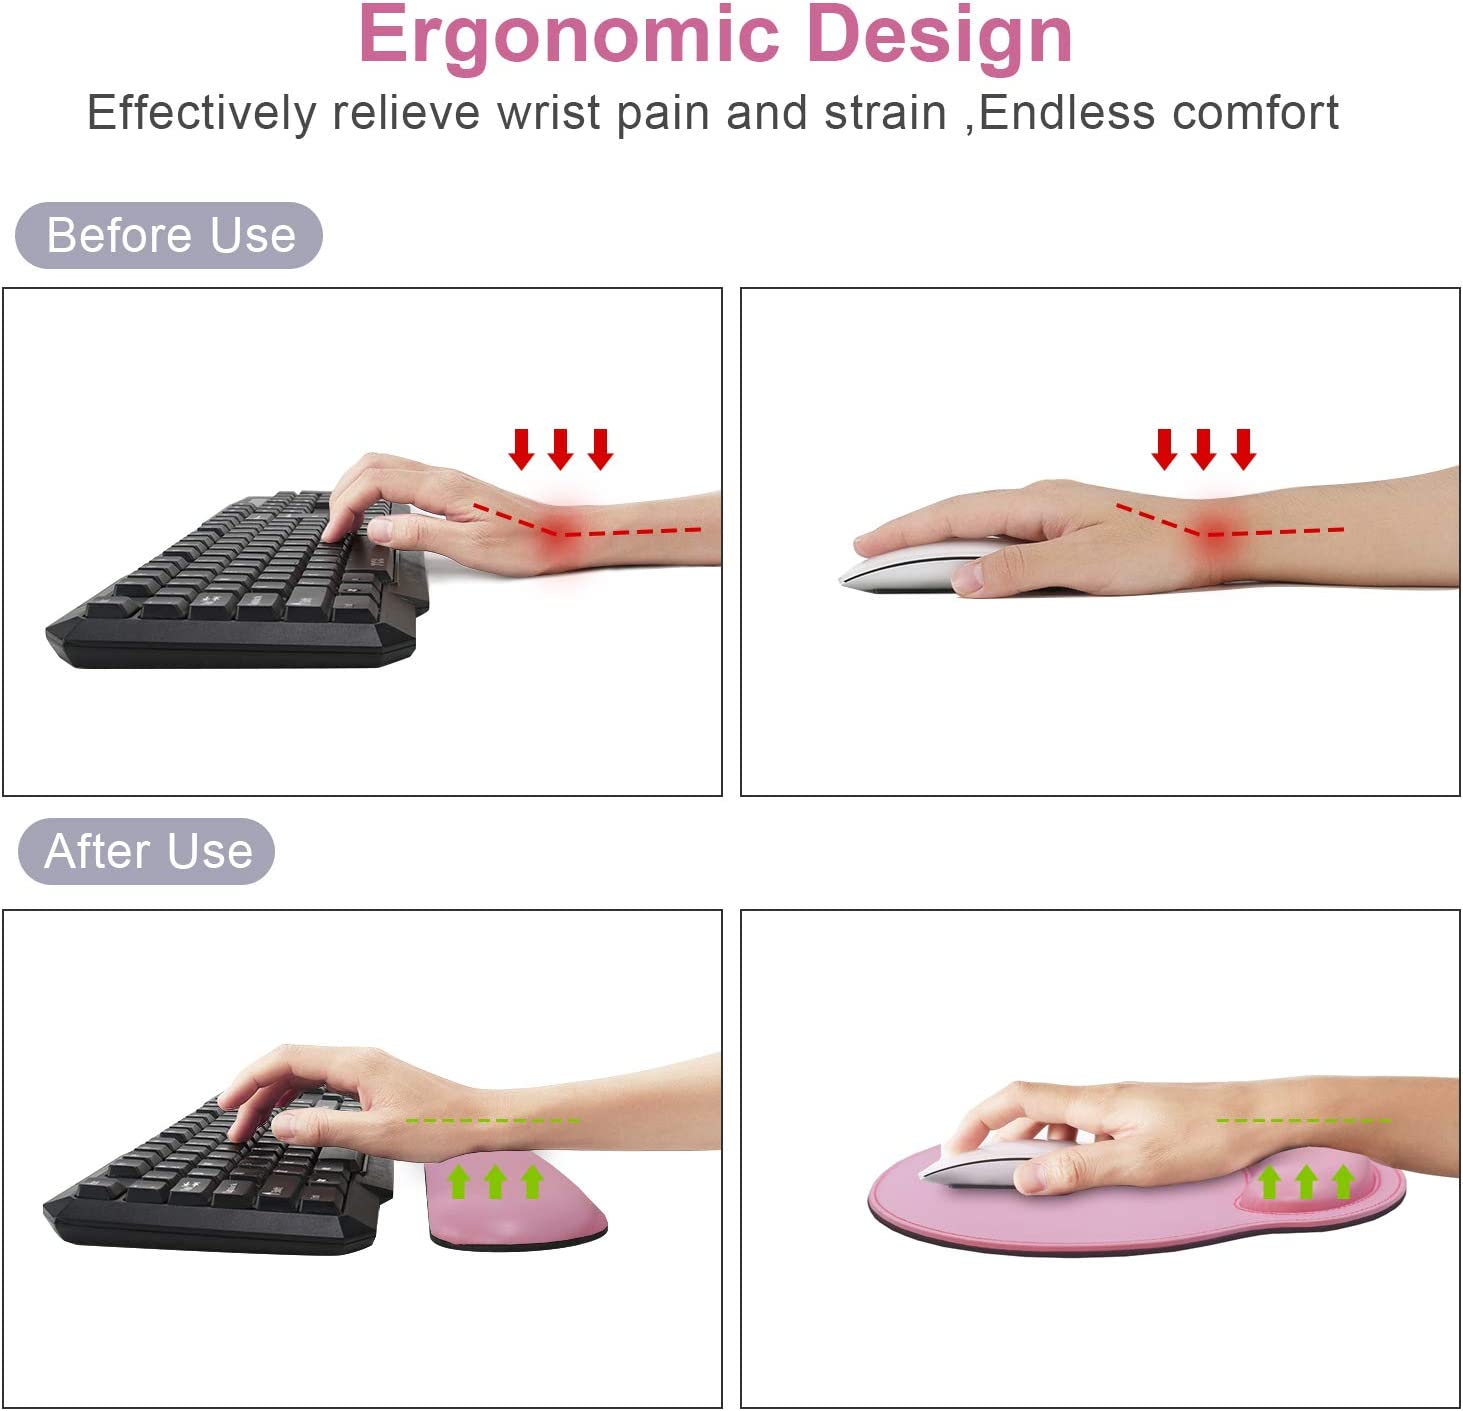 Pink Ergonomic Mouse Pad Set Keyboard Wrist Rest Pad and Mousepads with Wrist Support,iVeze Pu Leather Memory Foam Lightweight Comfortable Mouse Pads for Home Office Efficient Working